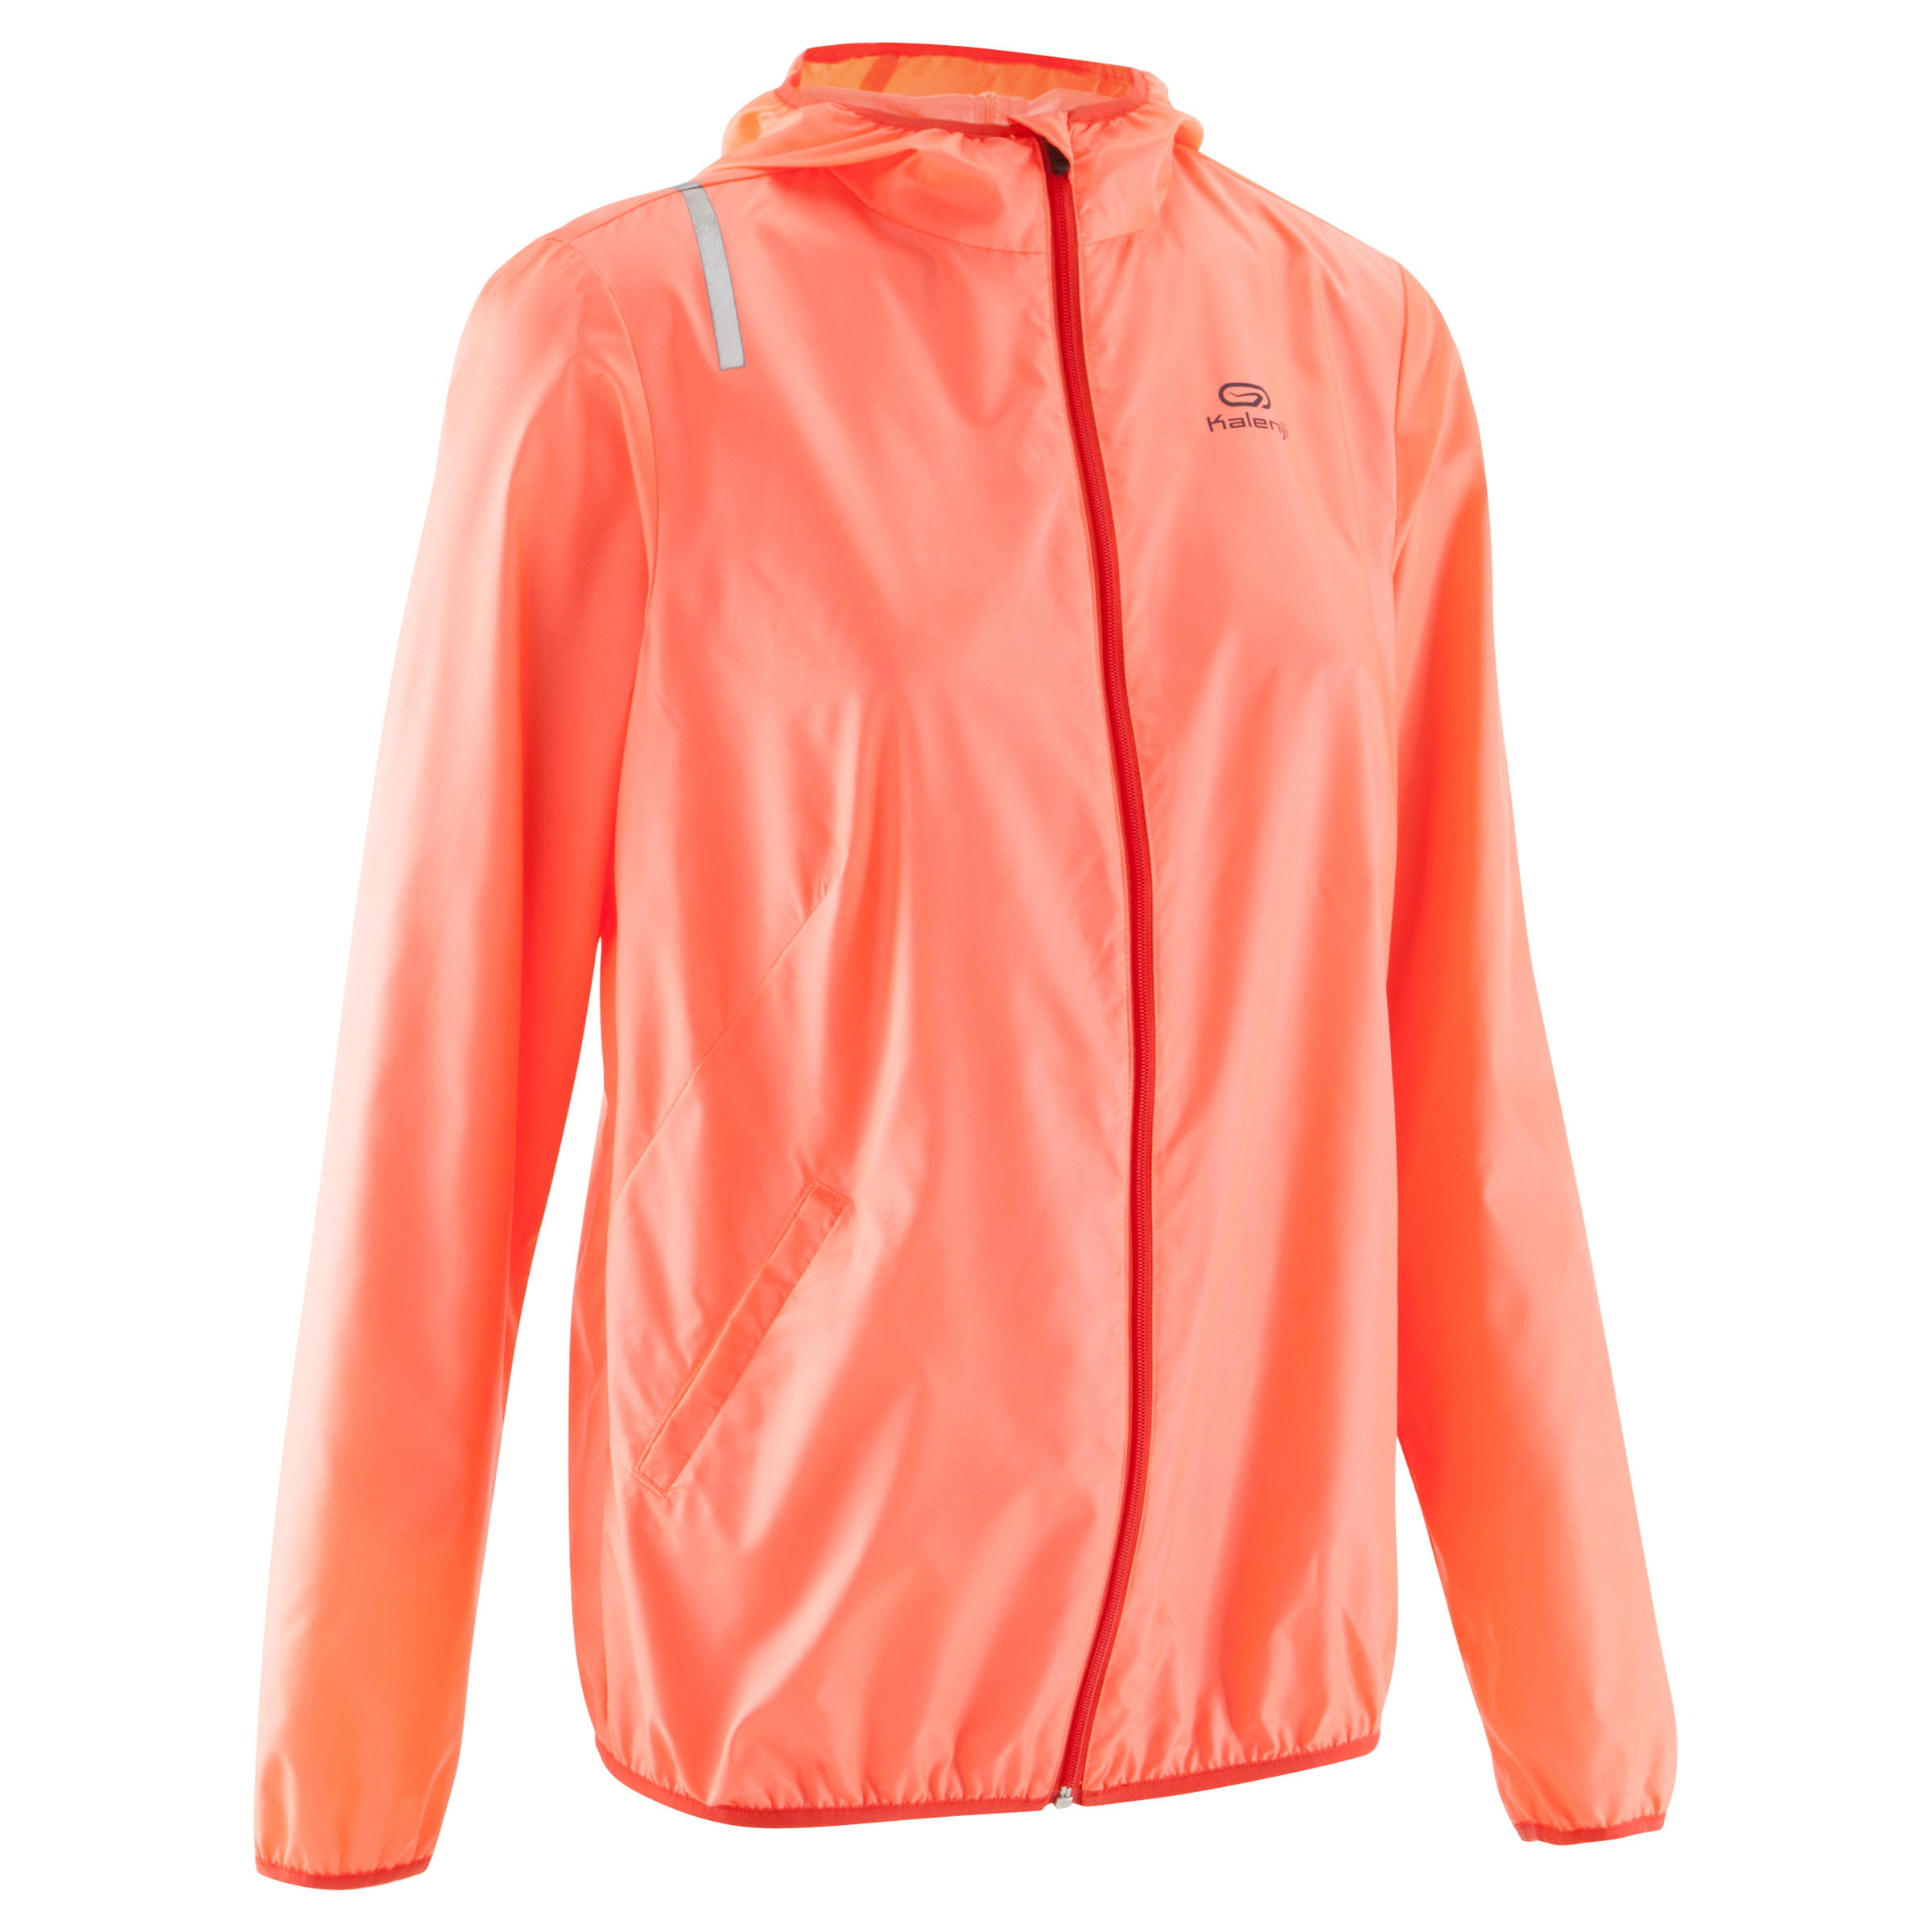 Run Wind Women's Running Windproof Jacket - Neon Coral